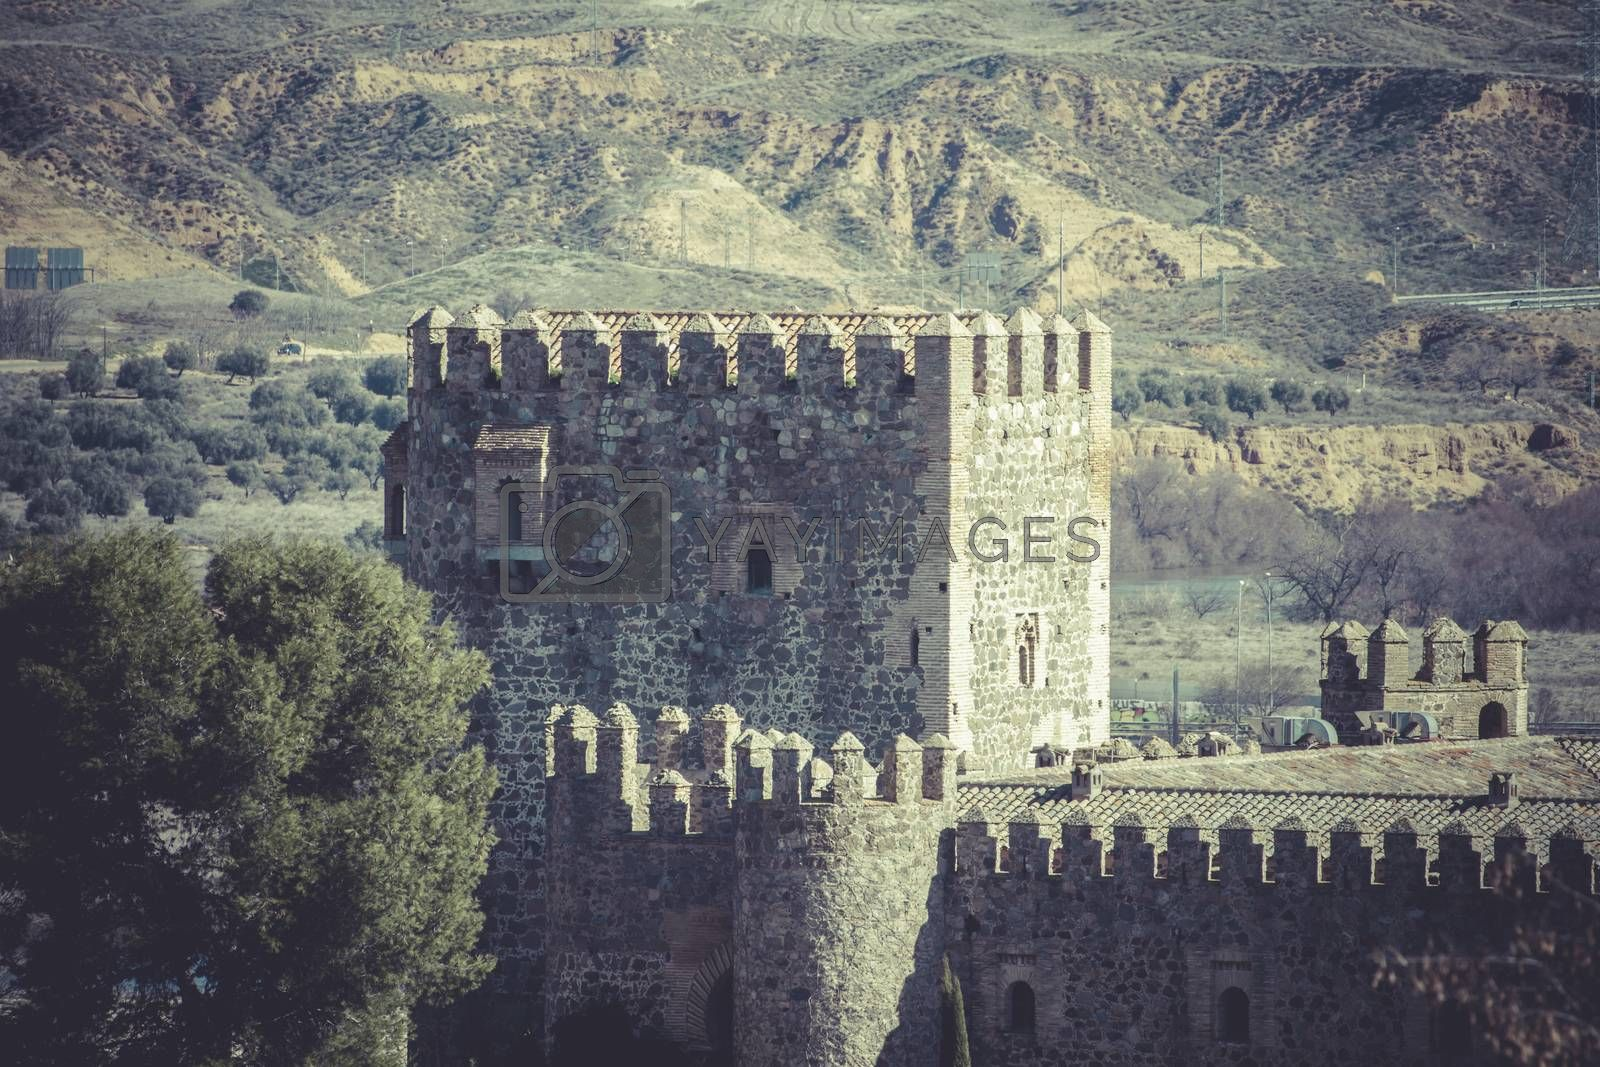 City wall of Toledo, Spanish imperial city famous for its huge h by FernandoCortes